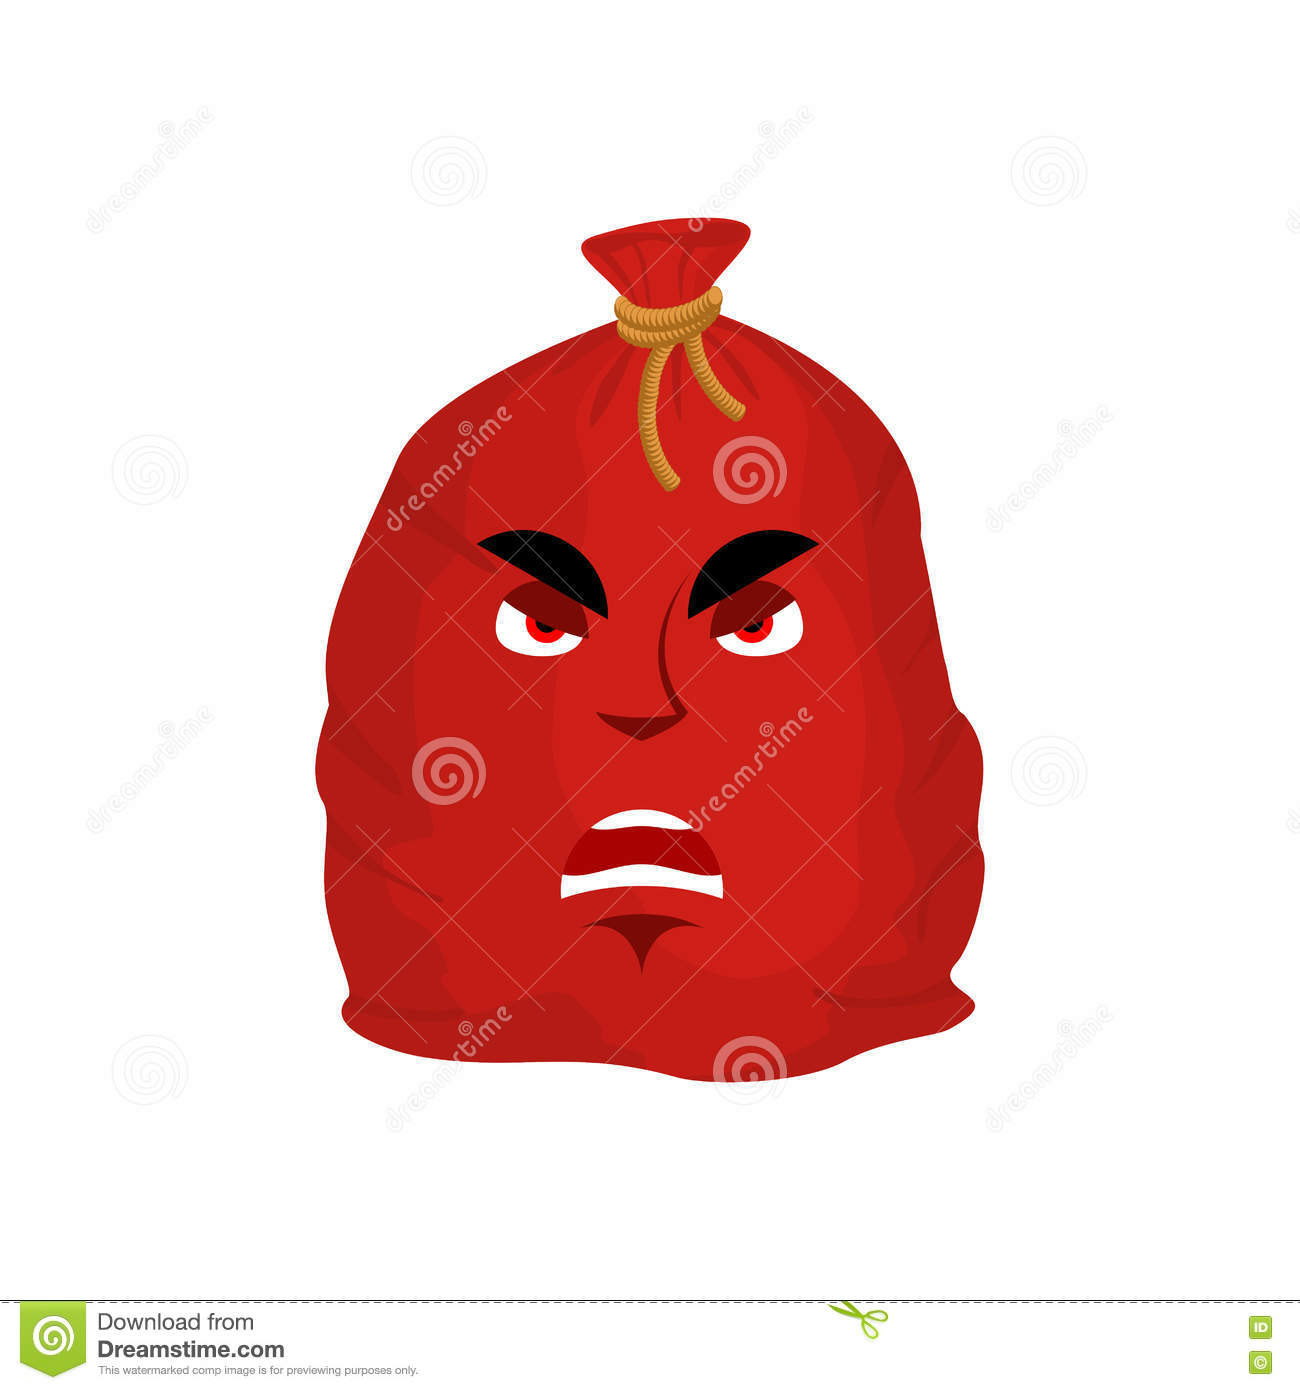 Santa Bag Angry Emotion Red Christmas Sack With Gift Emoji Sac Stock Vector Illustration Of Material Gift 82563802 💡 how much does the shipping cost for emoji gift? santa bag angry emotion red christmas sack with gift emoji sac stock vector illustration of material gift 82563802